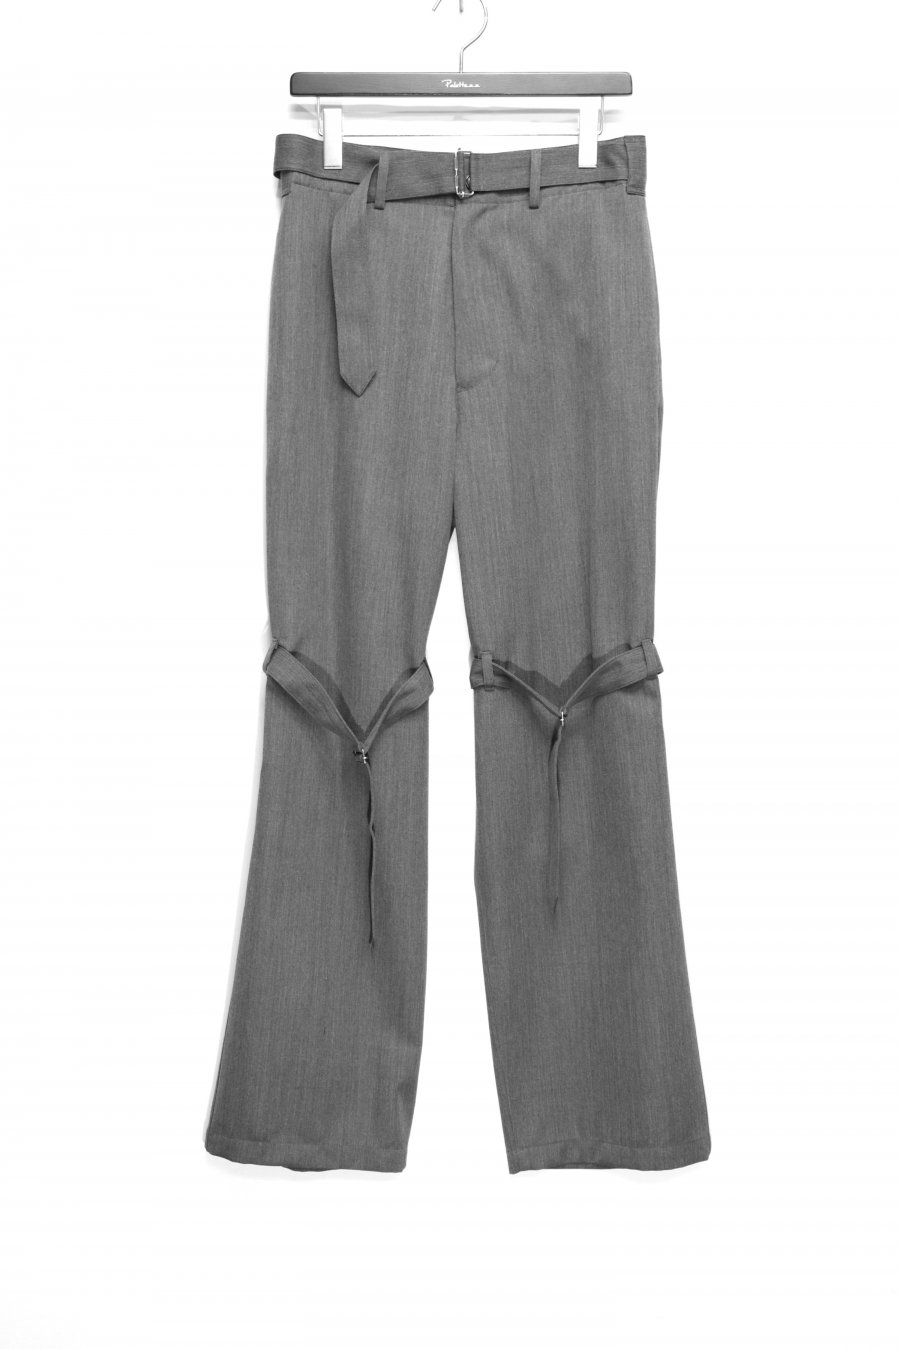 JOHN MASON SMITH  WOOL SATIN FRENCH ARMY OVERPANTS(GRAY)<img class='new_mark_img2' src='https://img.shop-pro.jp/img/new/icons15.gif' style='border:none;display:inline;margin:0px;padding:0px;width:auto;' />